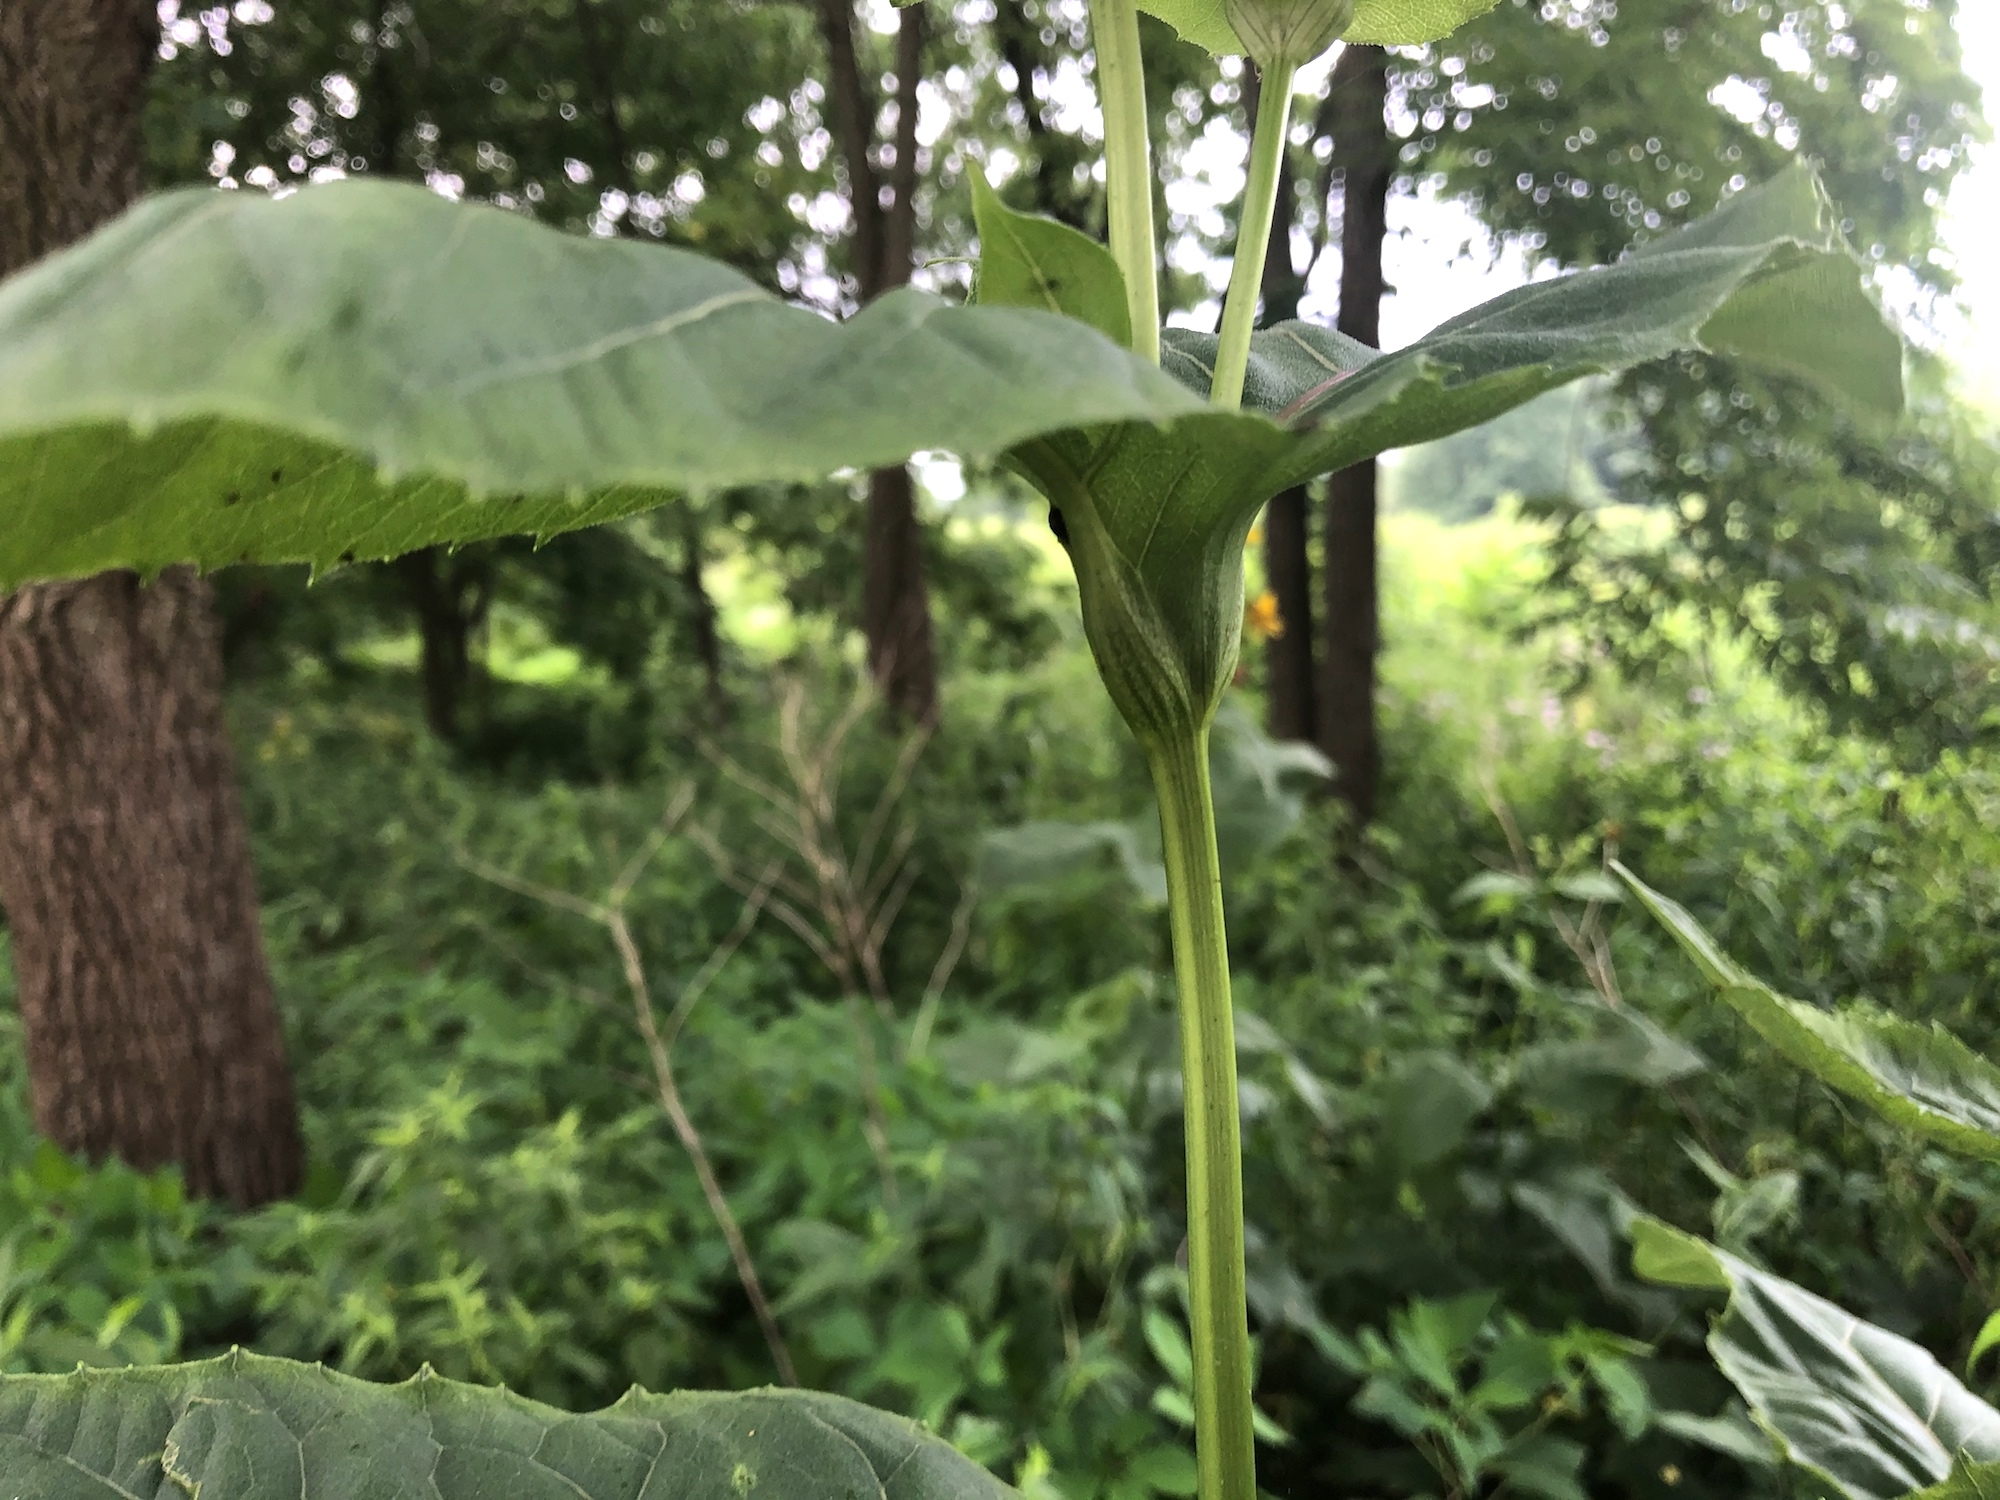 Cup Plant at edge of woods between Marion Dunn and Oak Savanna in Madison, Wisconsin on July 18, 2020.